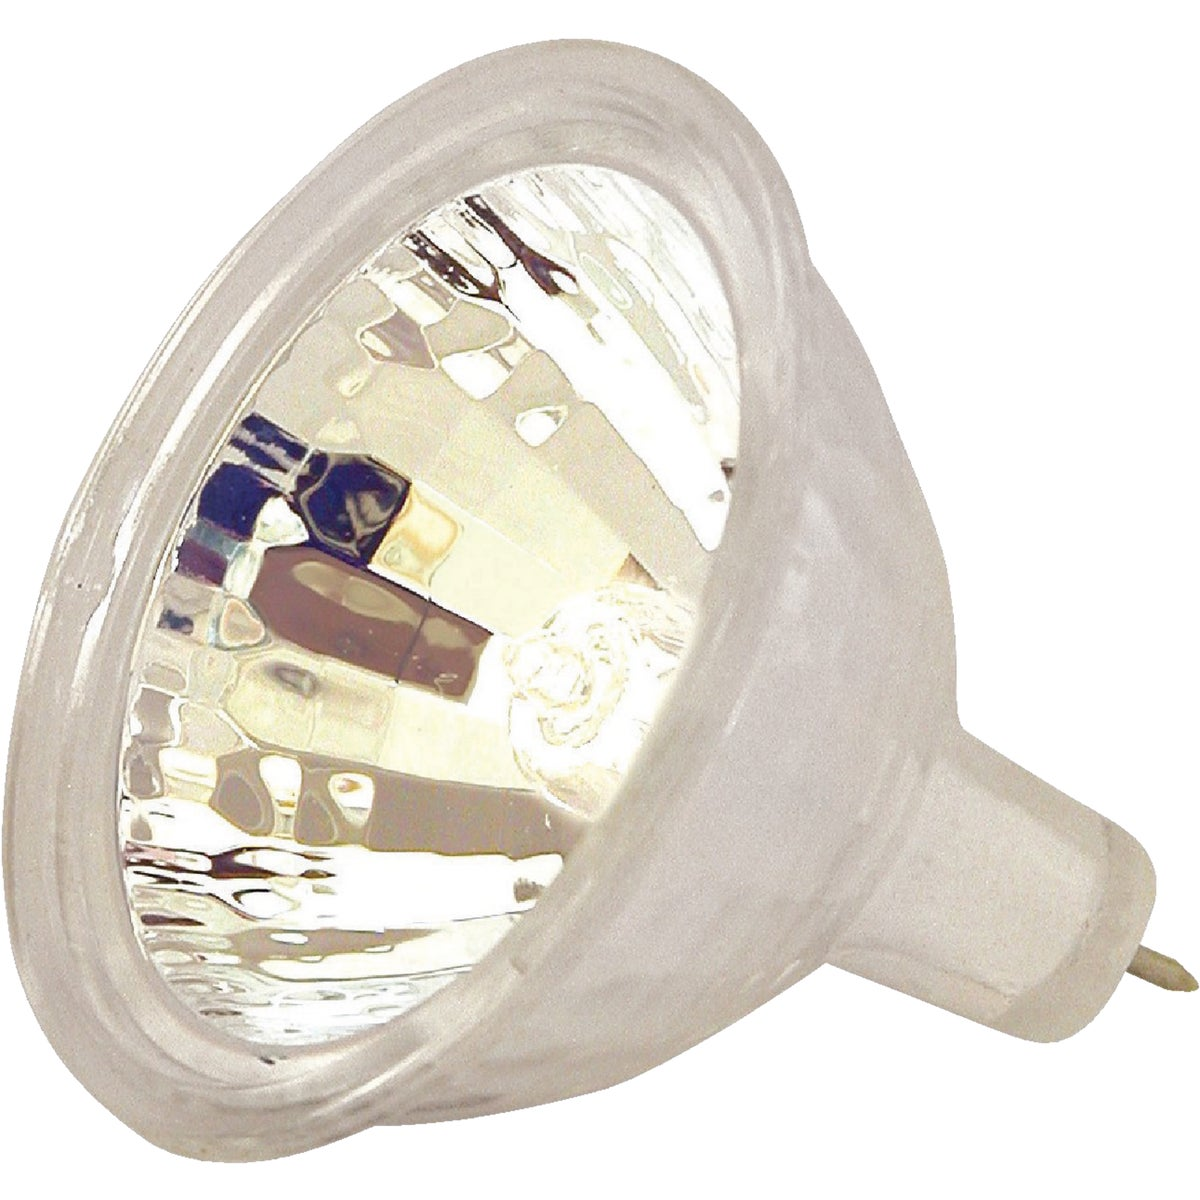 35W MR16 HALOGEN BULB - ML35W16C by Woods Wire Coleman